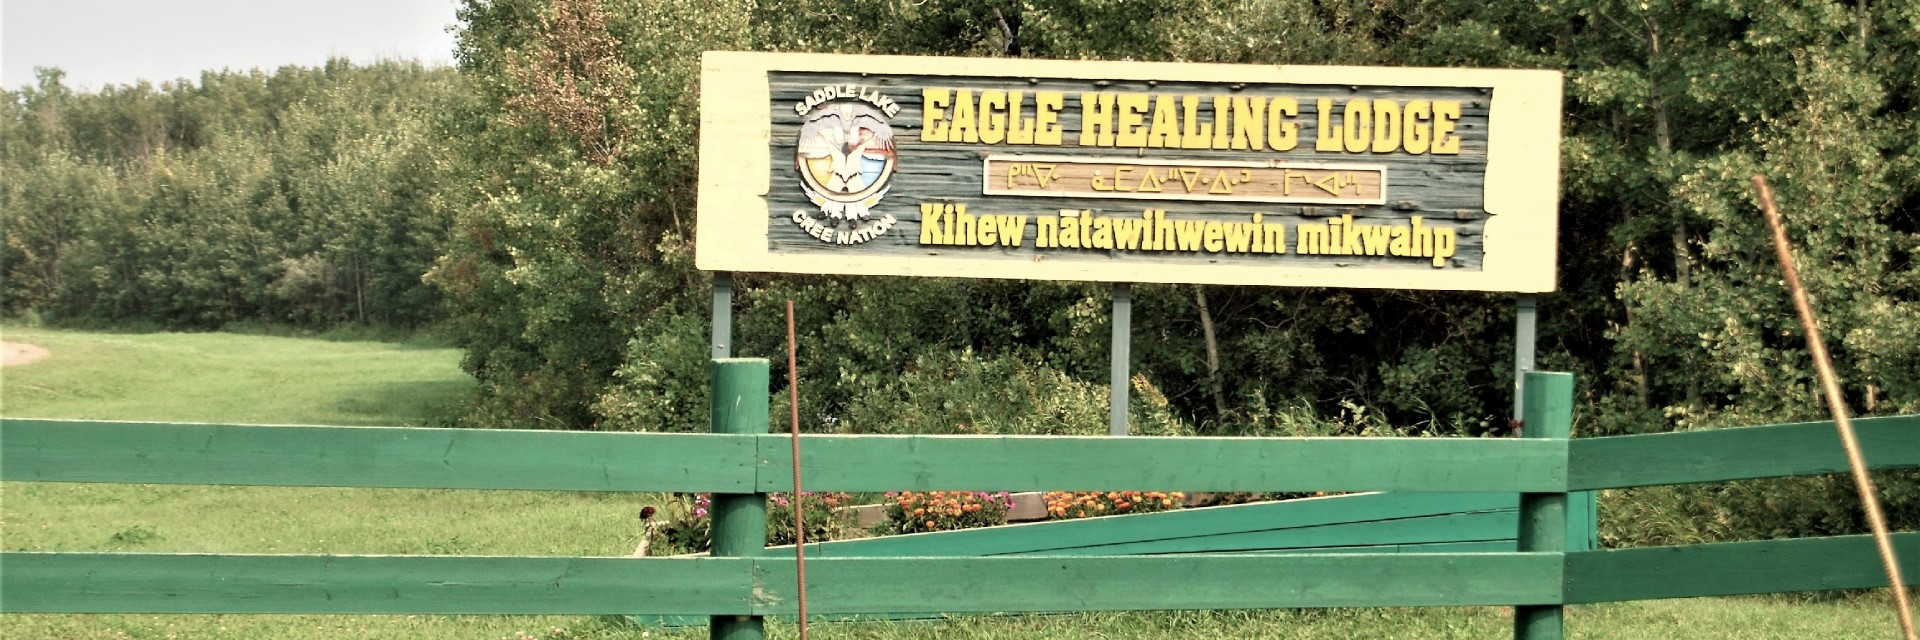 Eagle Healing Lodge